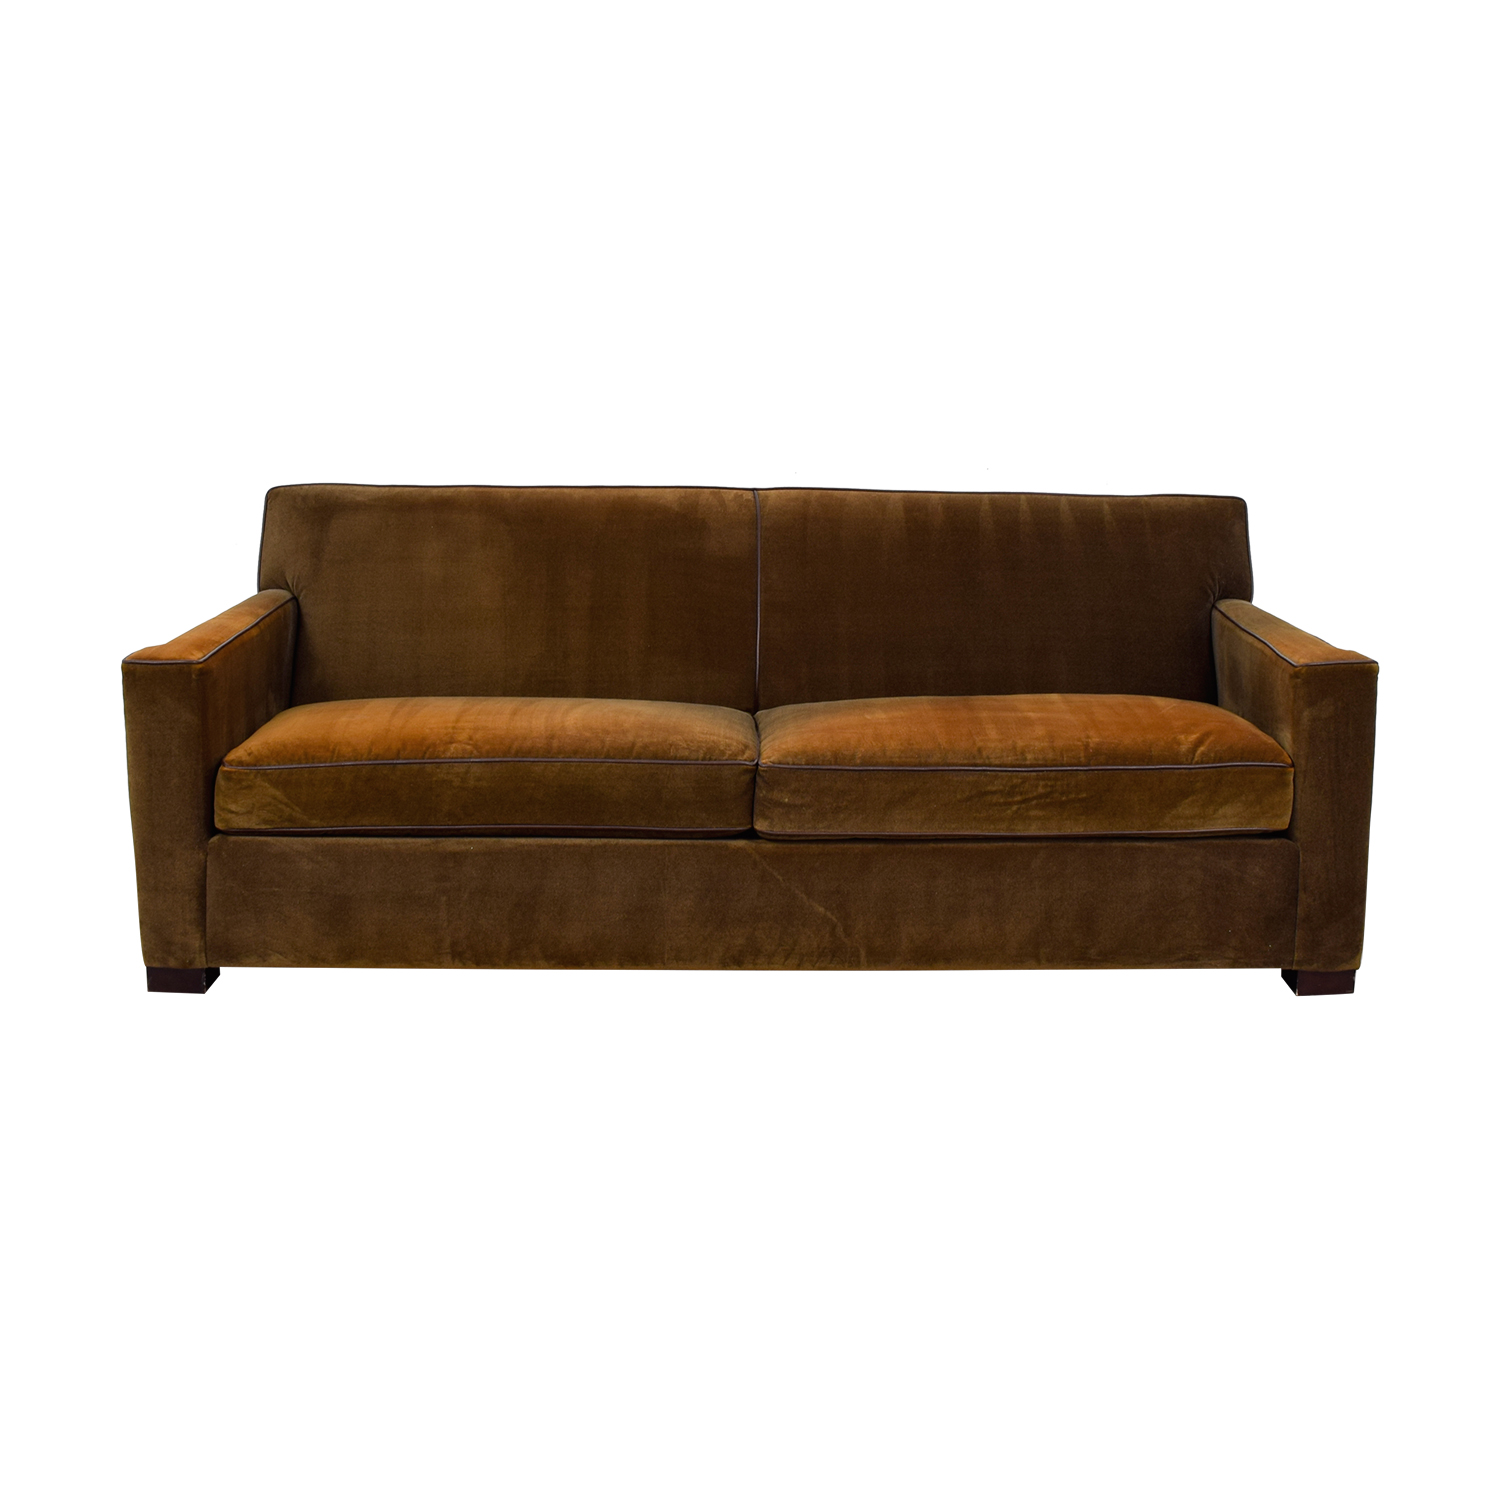 buy Crate & Barrel Chocolate Brown Sofa Crate & Barrel Classic Sofas